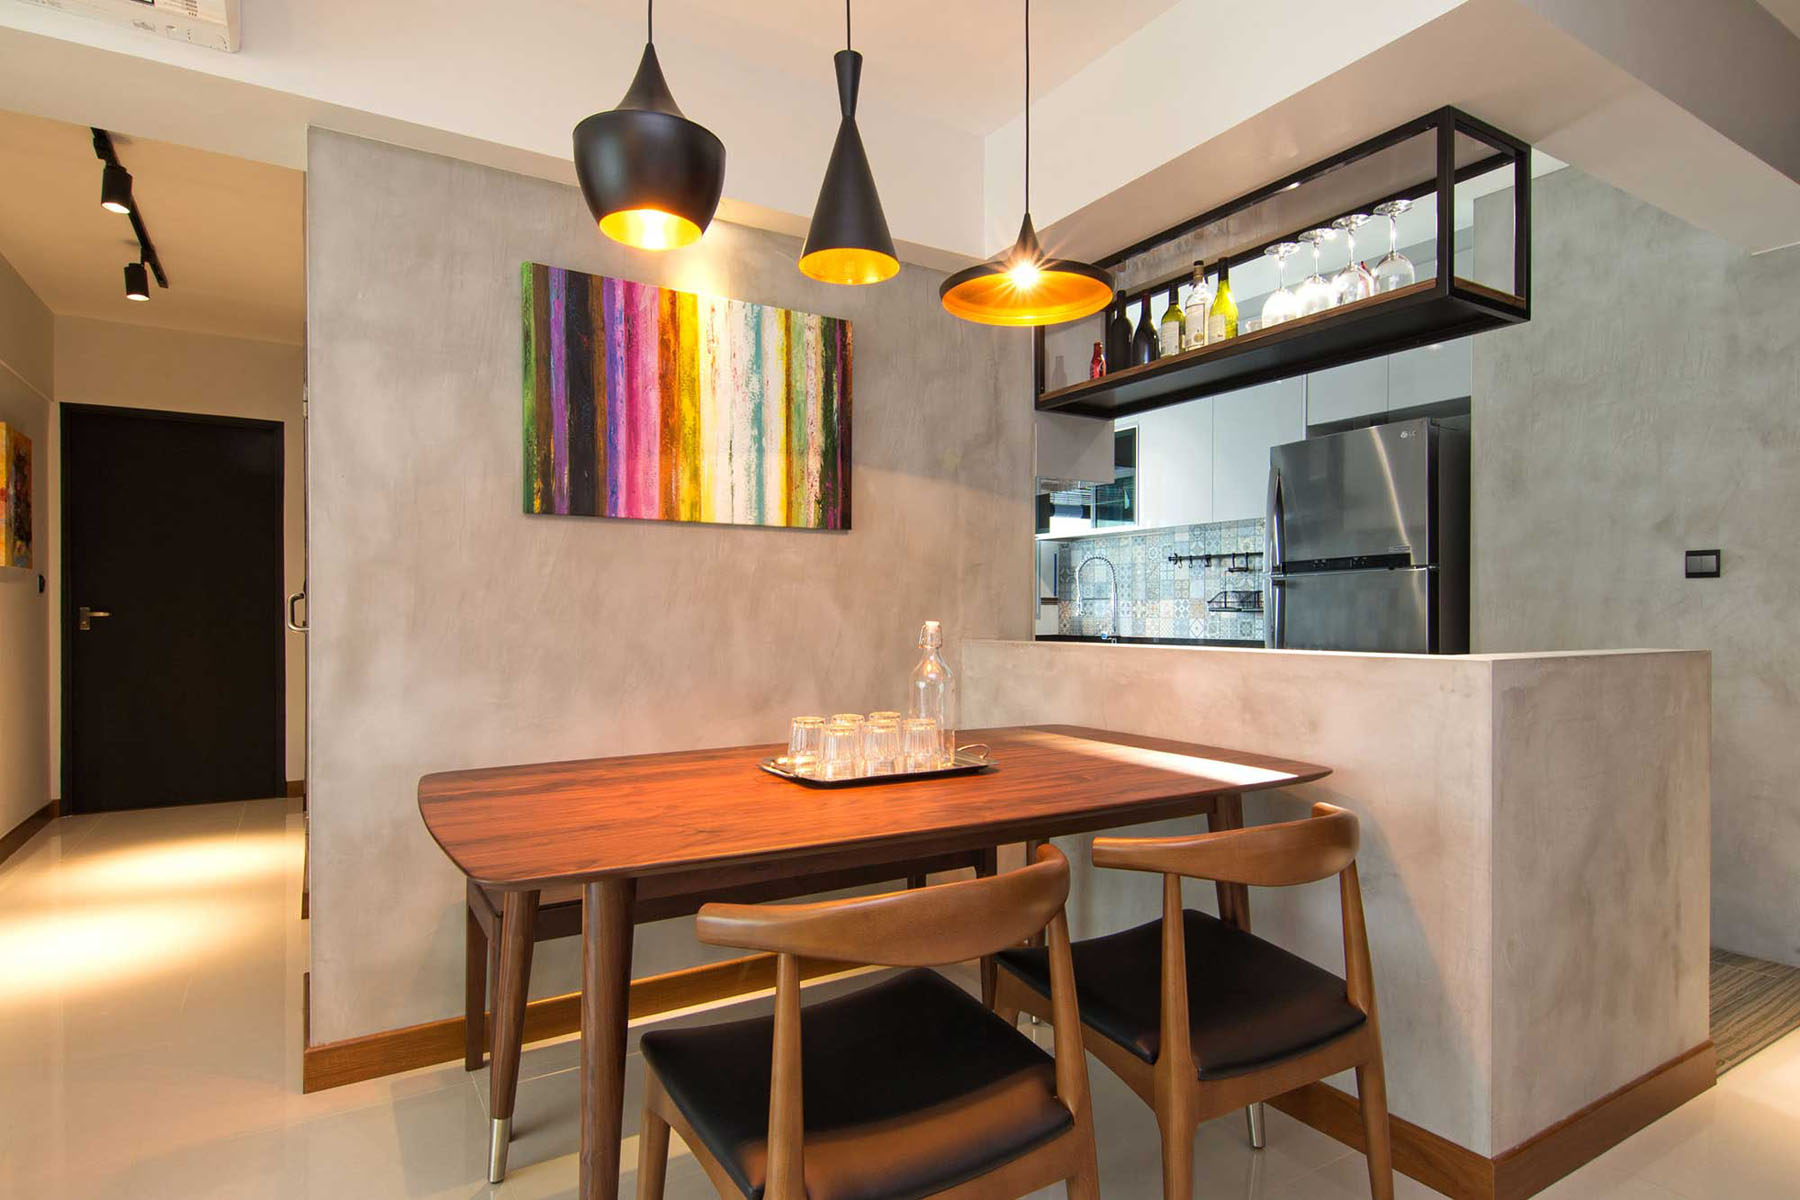 Apartment Interior Design Singapore cozy apartment in singapore with stylish elements | idesignarch